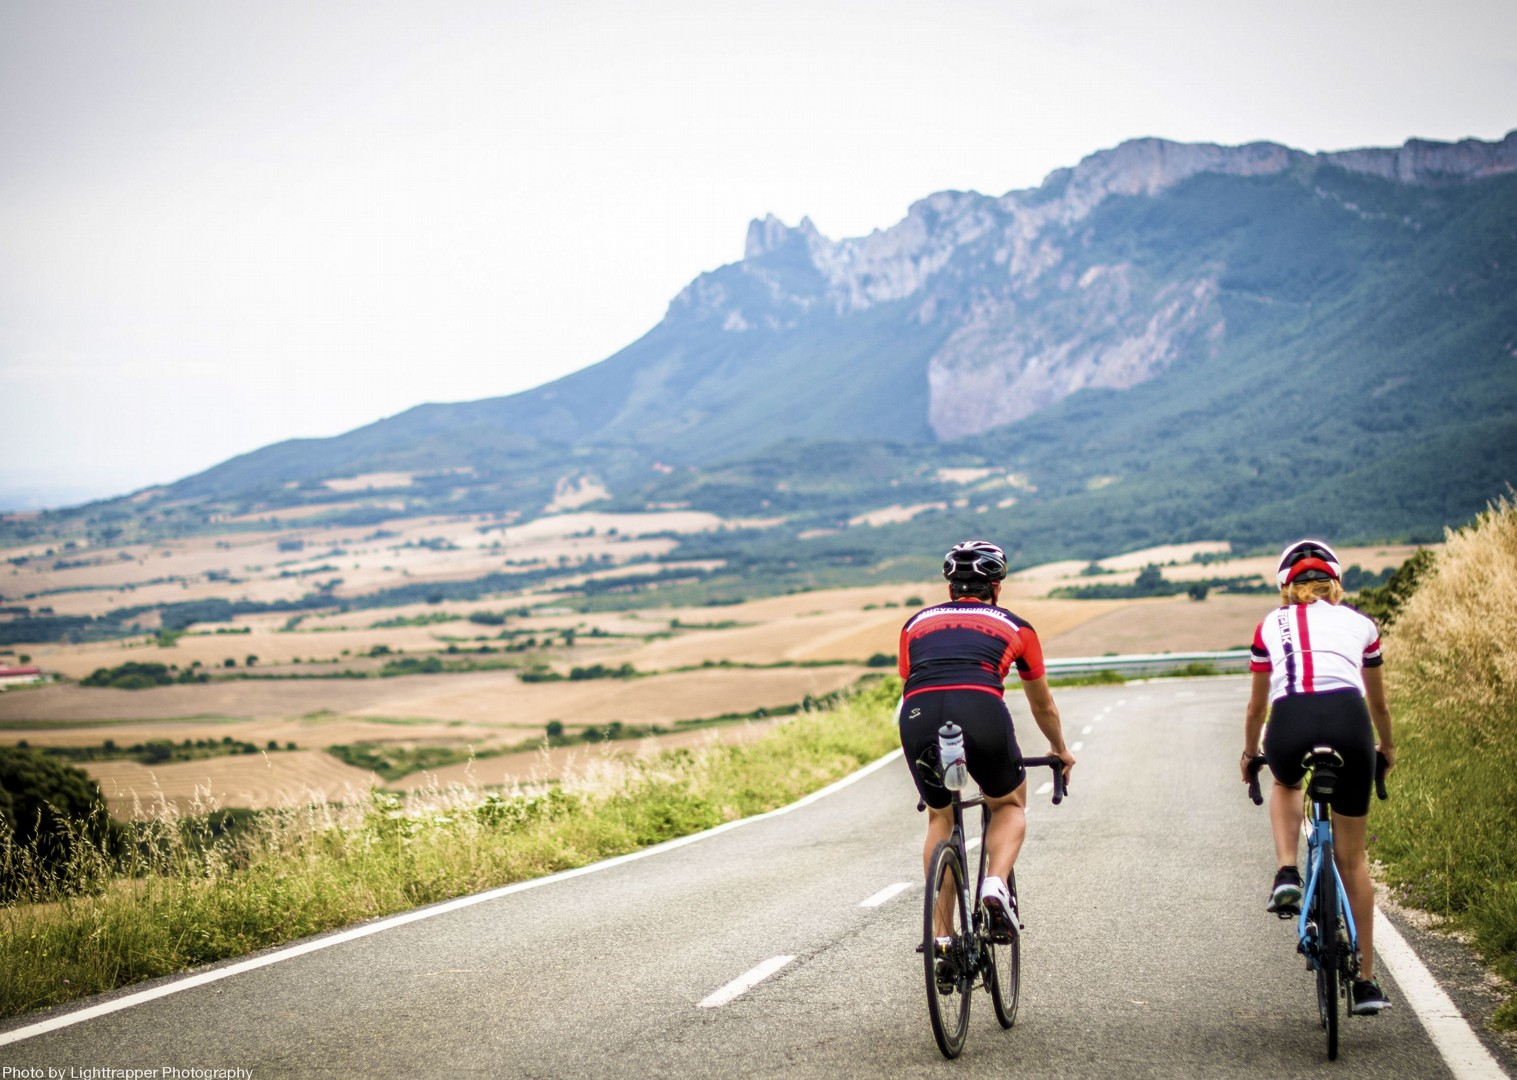 day6_northern_spain_145.jpg - Northern Spain - La Rioja - Ruta del Vino - Guided Road Cycling Holiday - Road Cycling